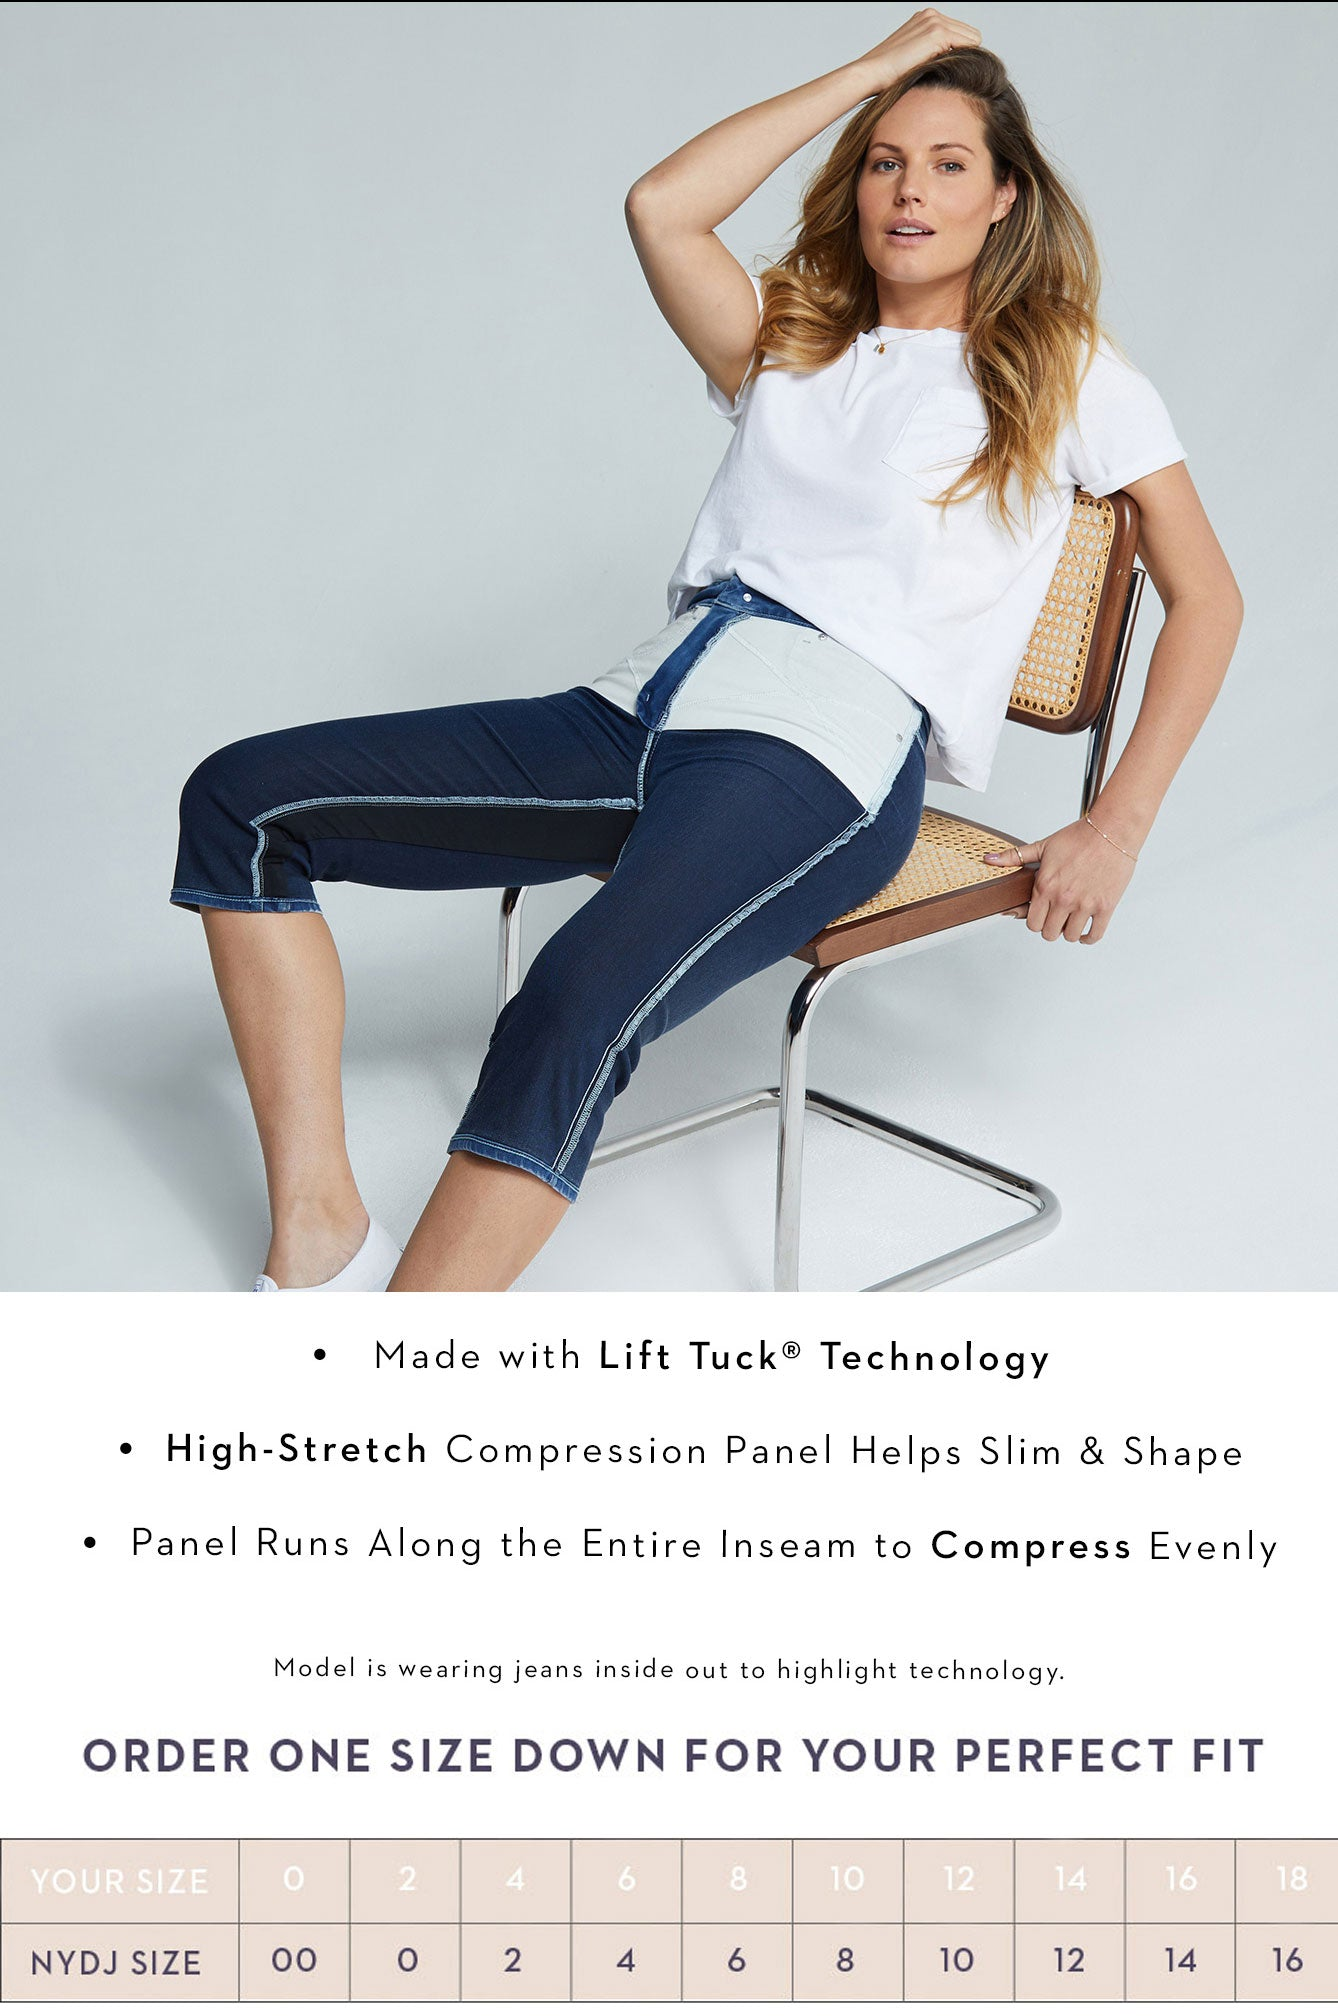 Look for the X, Lift Tuck Technology